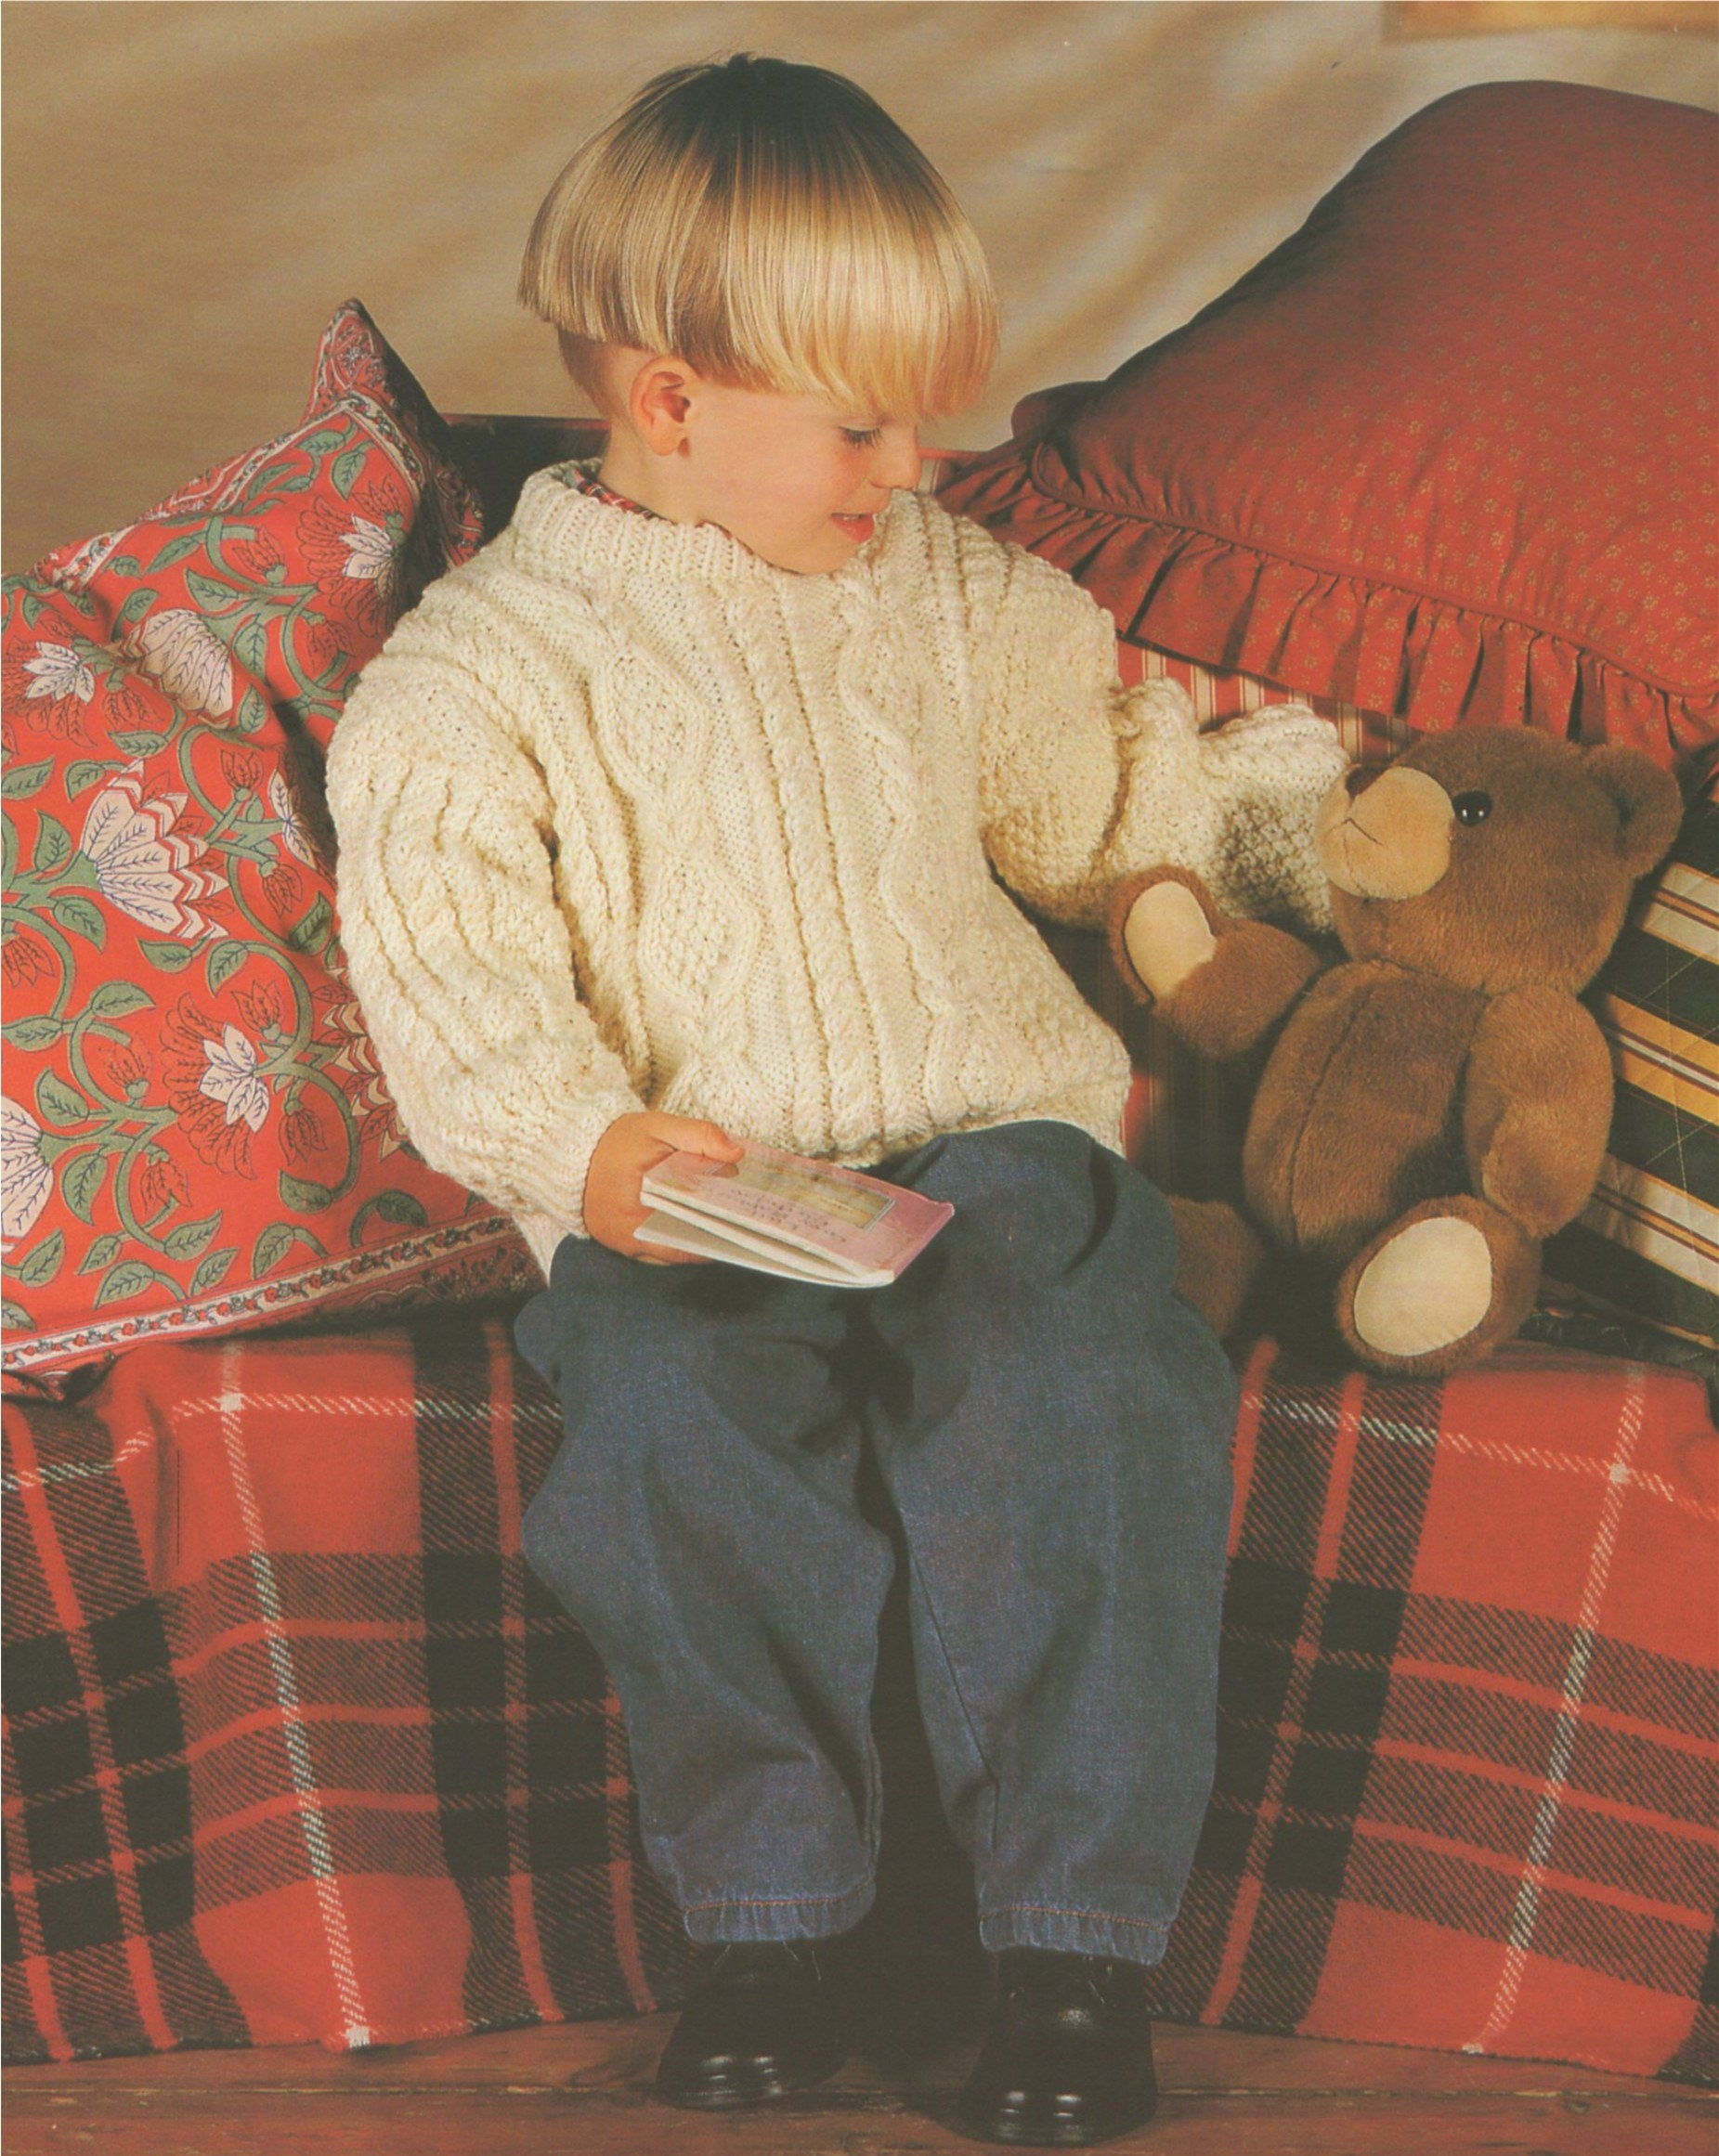 Childrens Aran Knitting Patterns Childrens Aran Sweater Knitting Pattern Pdf Boys Or Girls 20 22 24